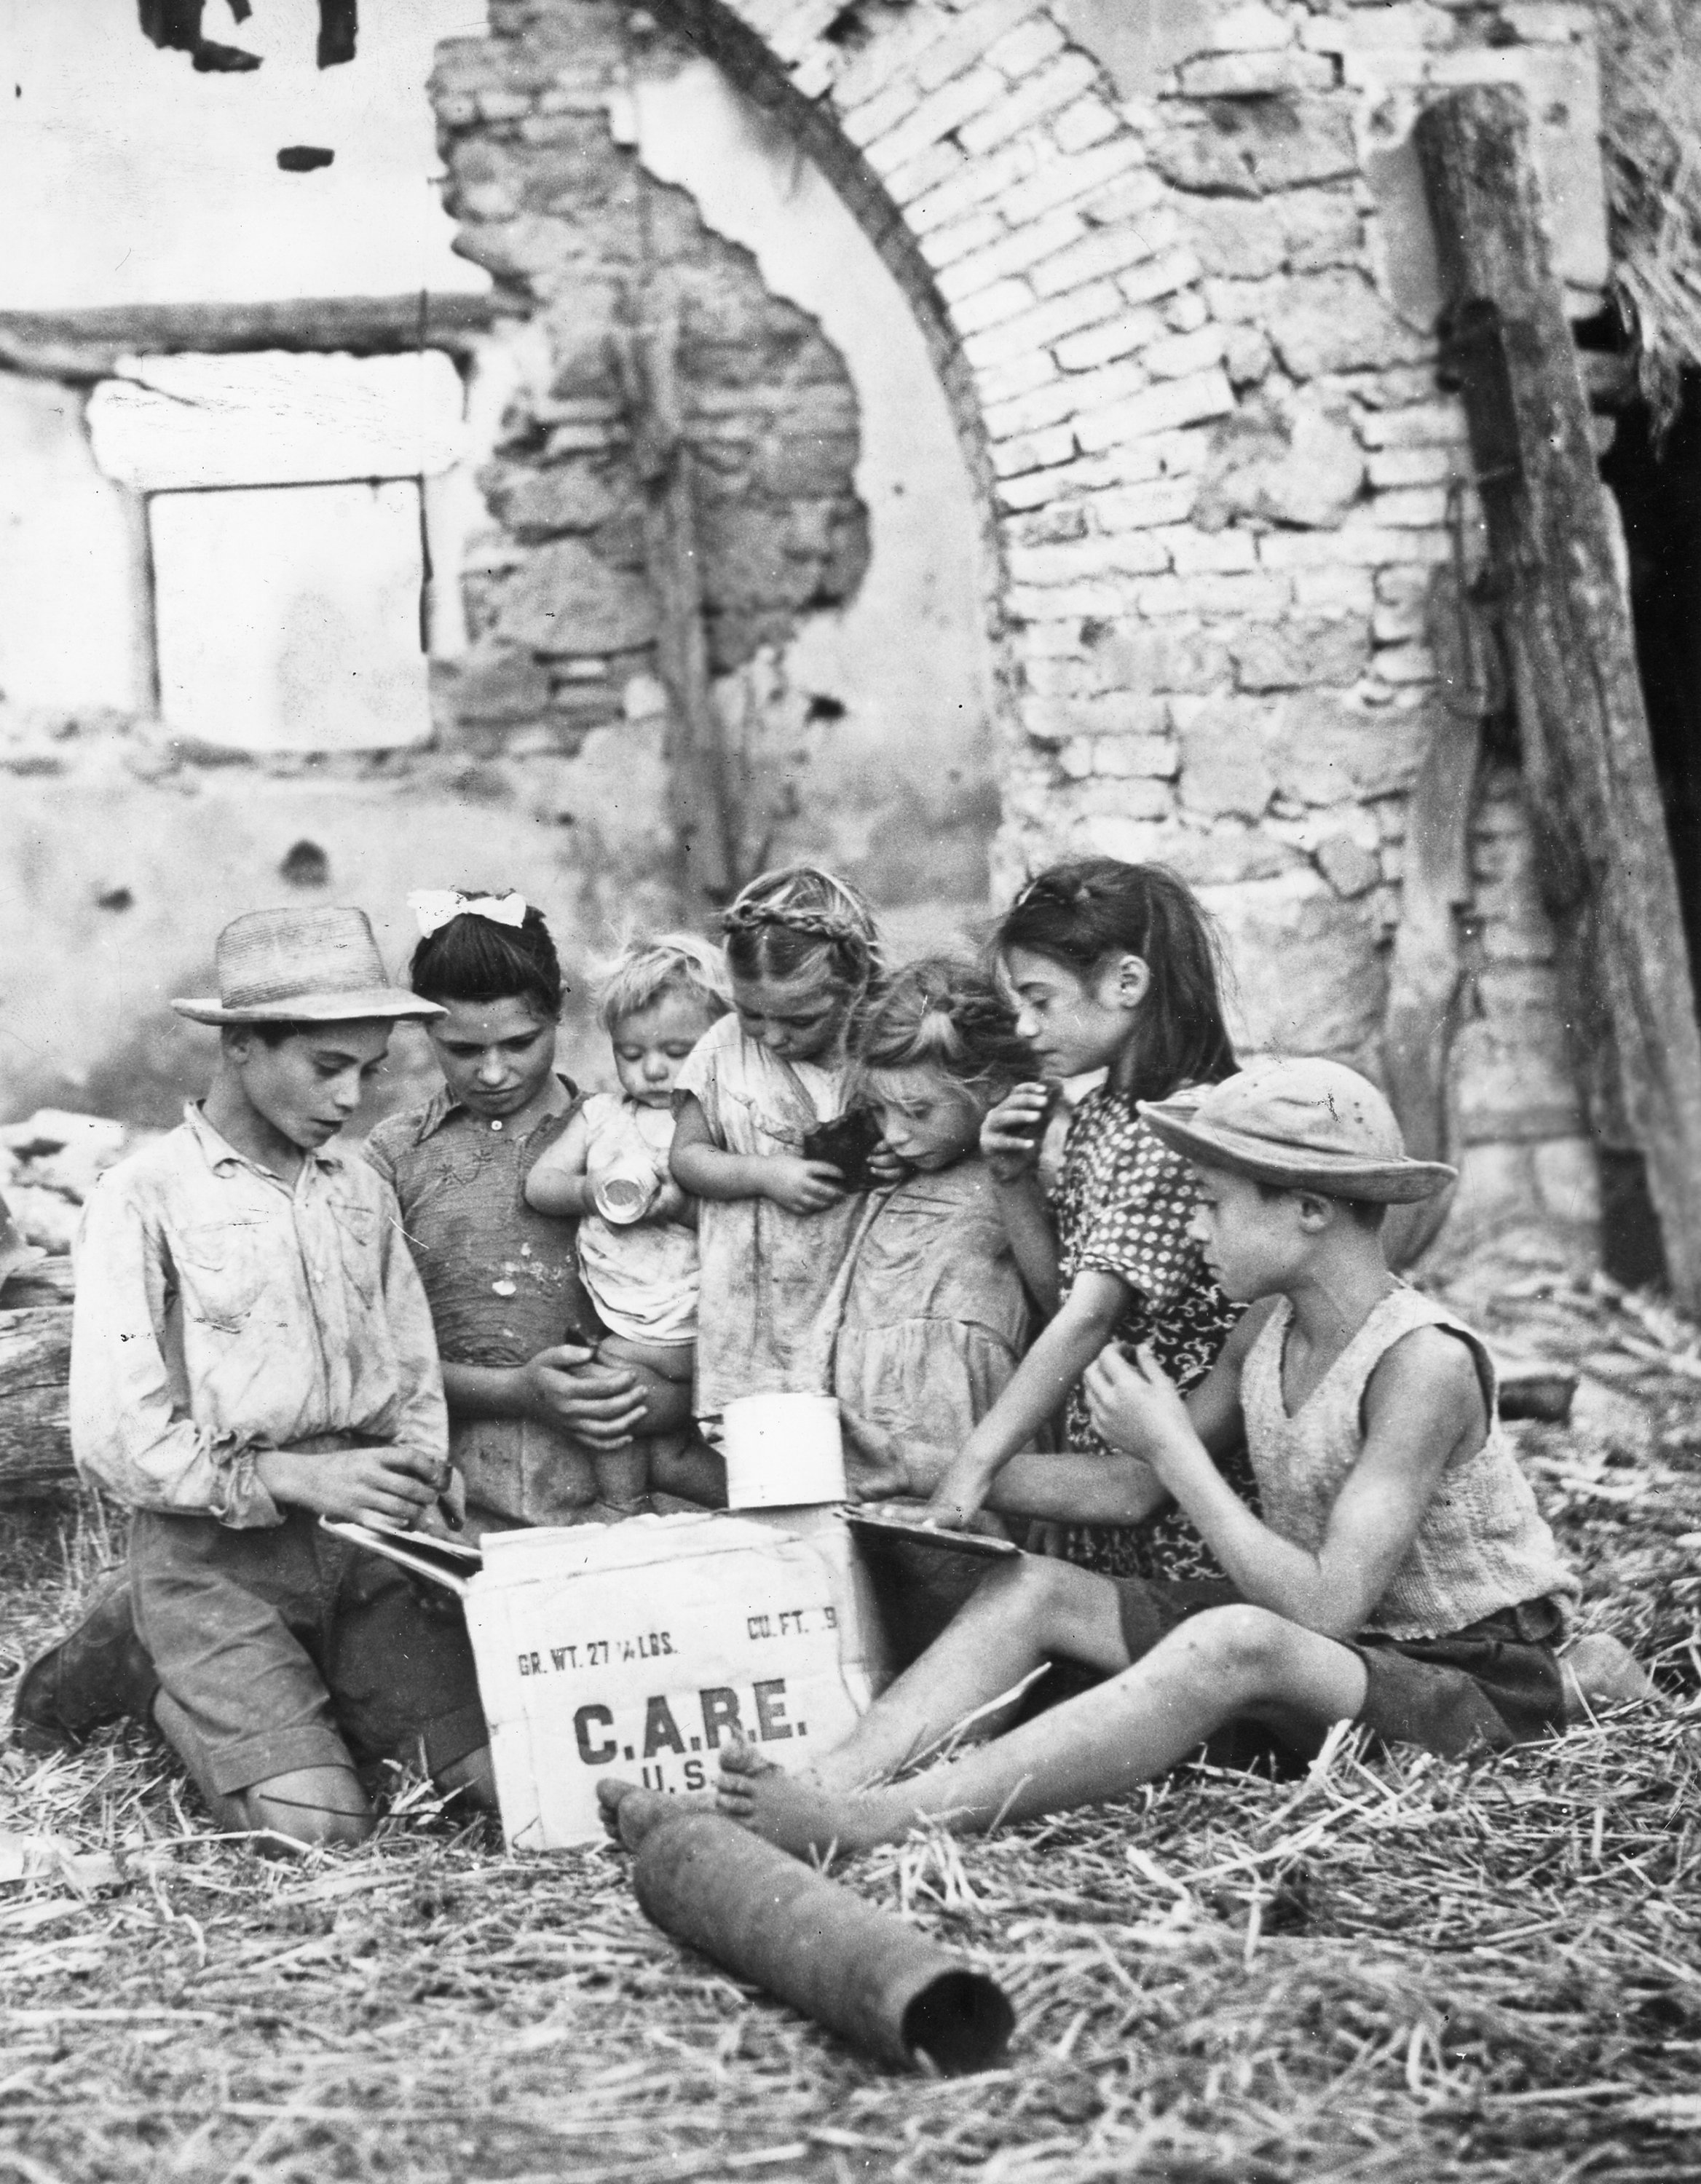 In the ruins of their farmhouse near Cisterna, Italy, these children of the Zuccairi family delve into the contents of a big CARE food package from America. During the Nazi occupation, the family lived in the caves near Cisterna.